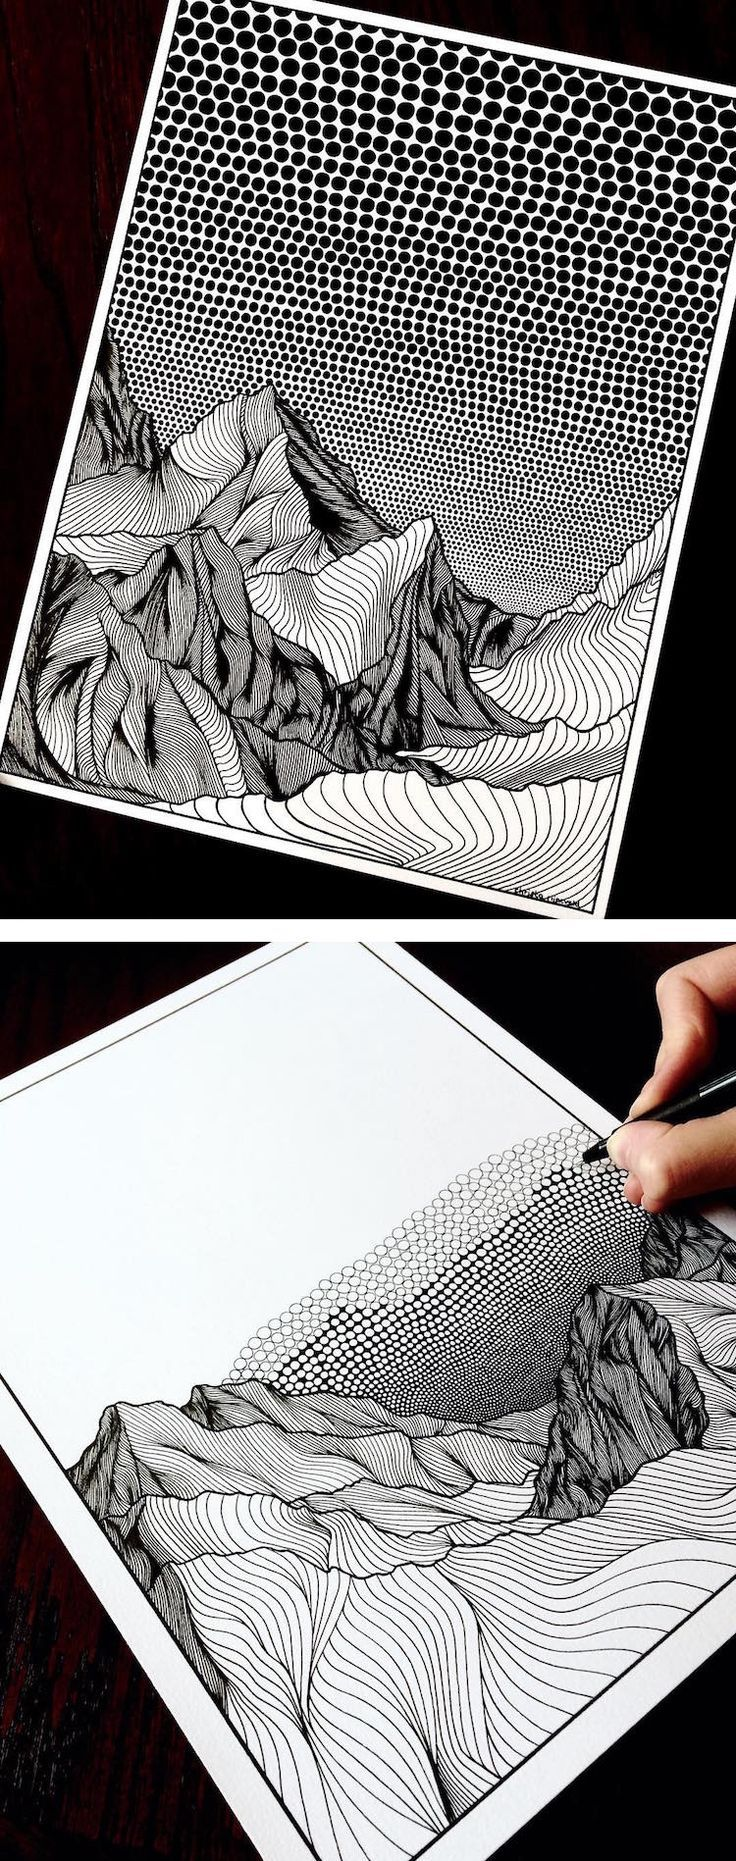 Artist Draws Countless Lines and Dots to Capture the Majestic Beauty of Mountains – My Modern Met